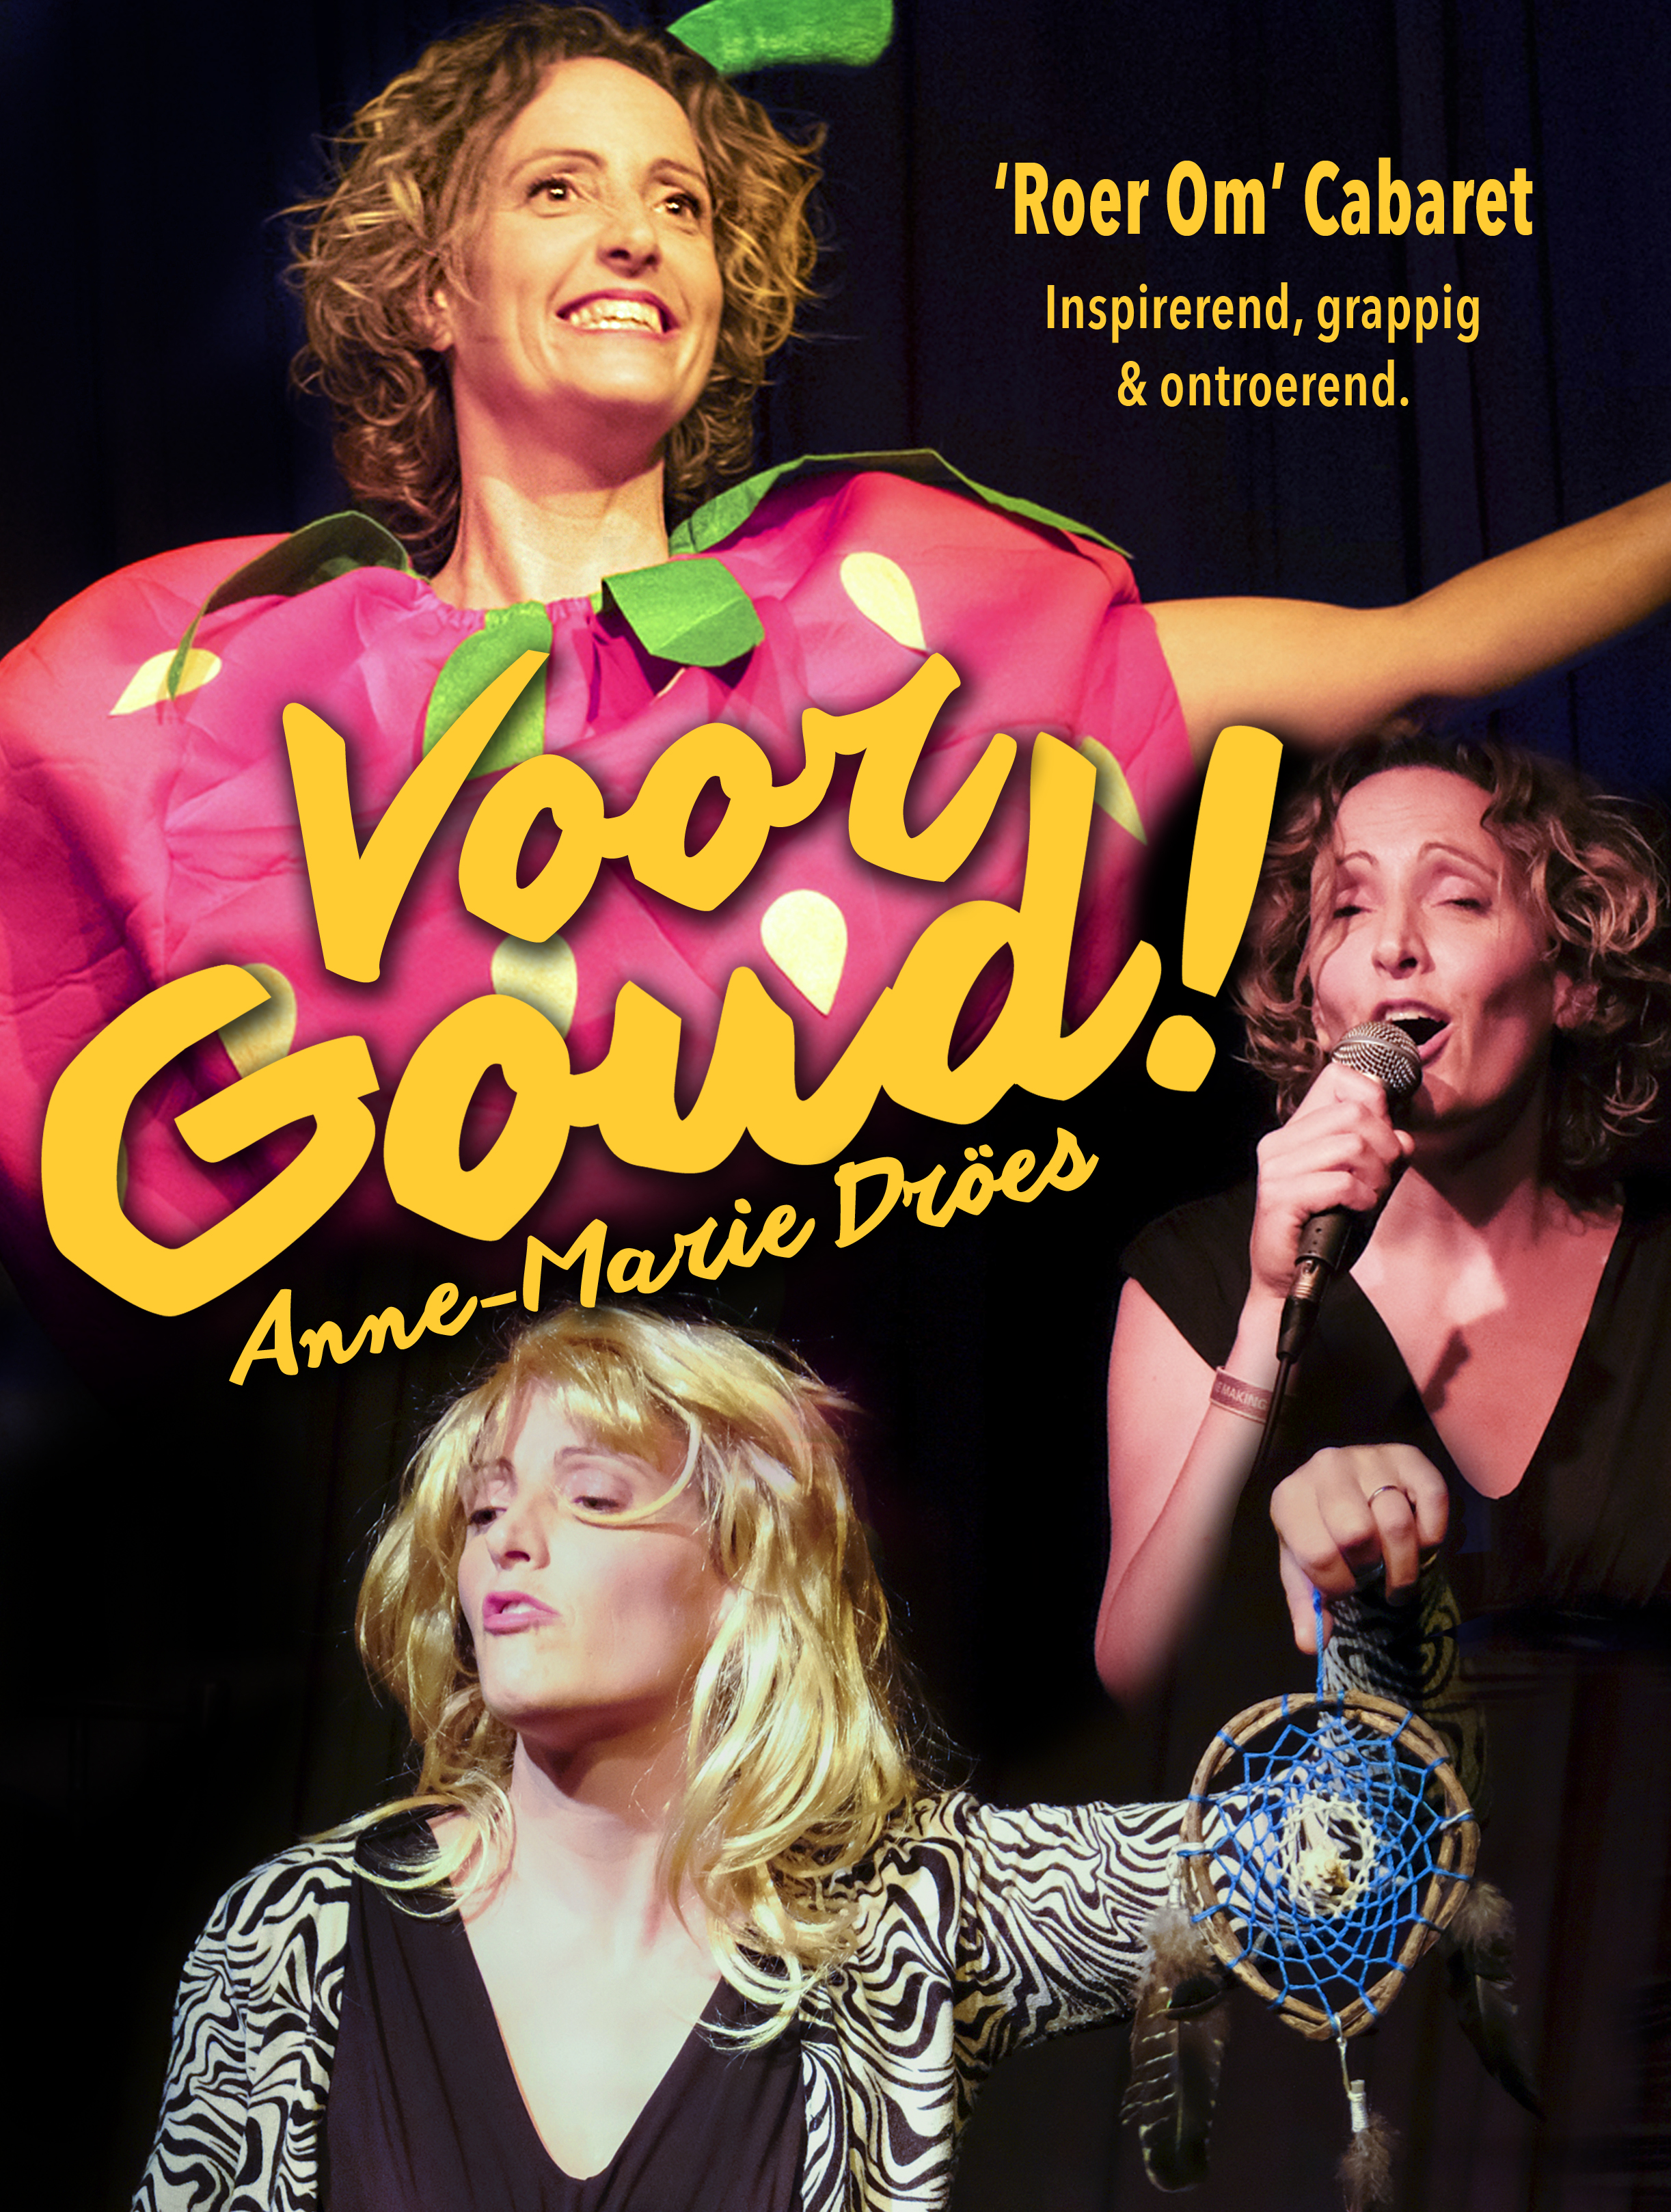 roer om cabaret anne marie droes